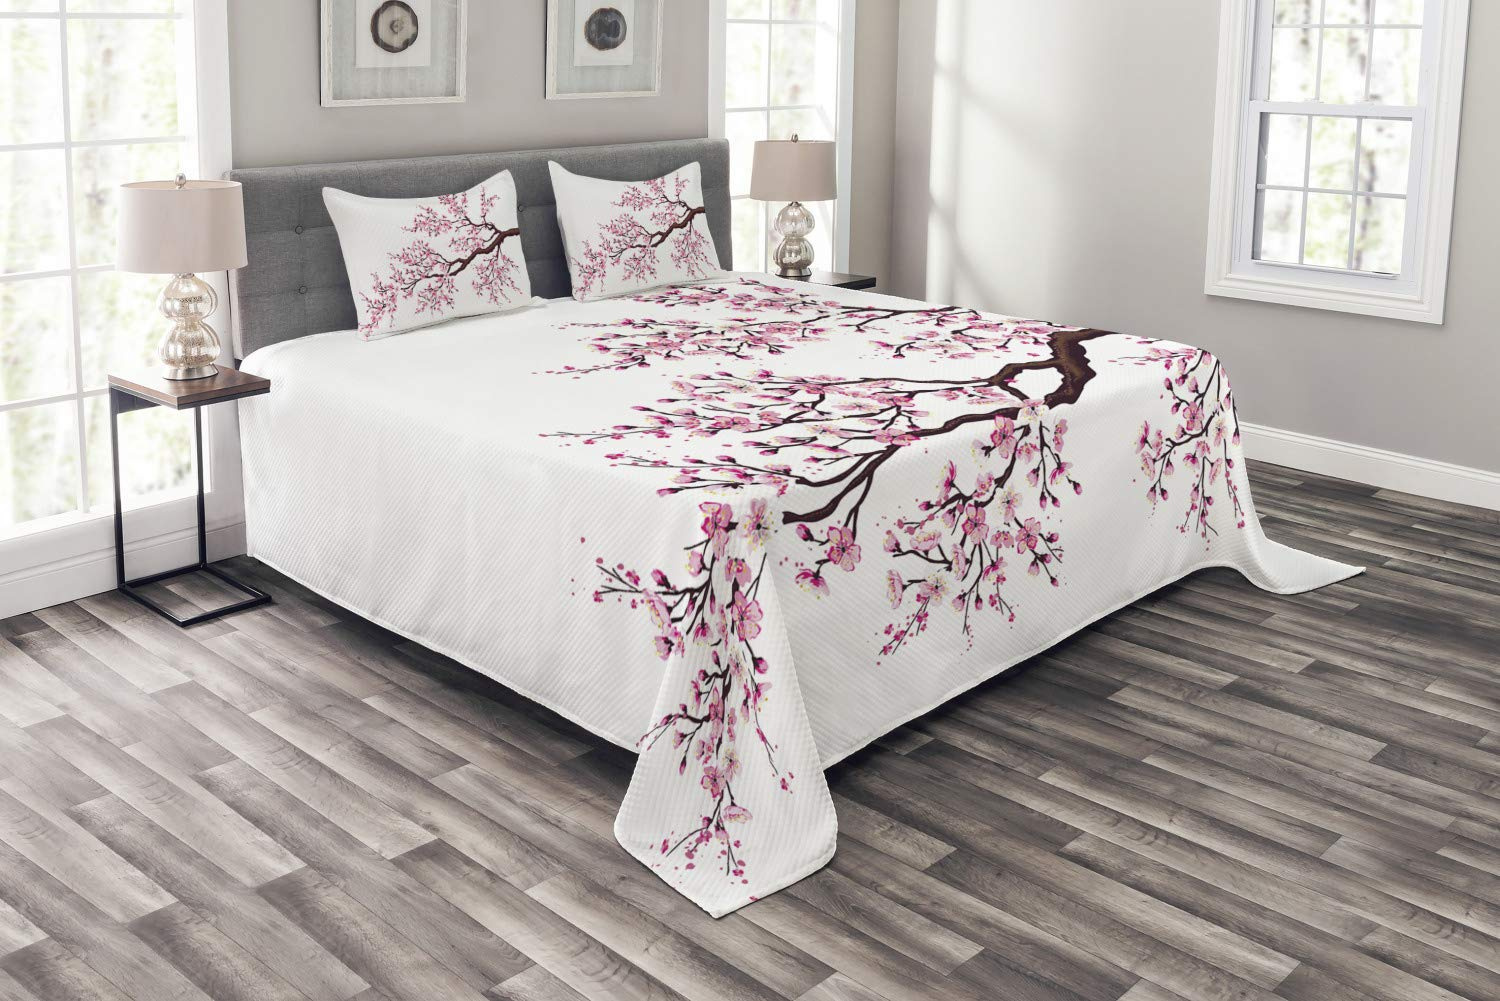 Ambesonne Japanese Bedspread, Branch of a Flourishing Sakura Tree Flowers Cherry Blossoms Spring Theme Art, Decorative Quilted 3 Piece Coverlet Set with 2 Pillow Shams, Queen Size, Dark Brown